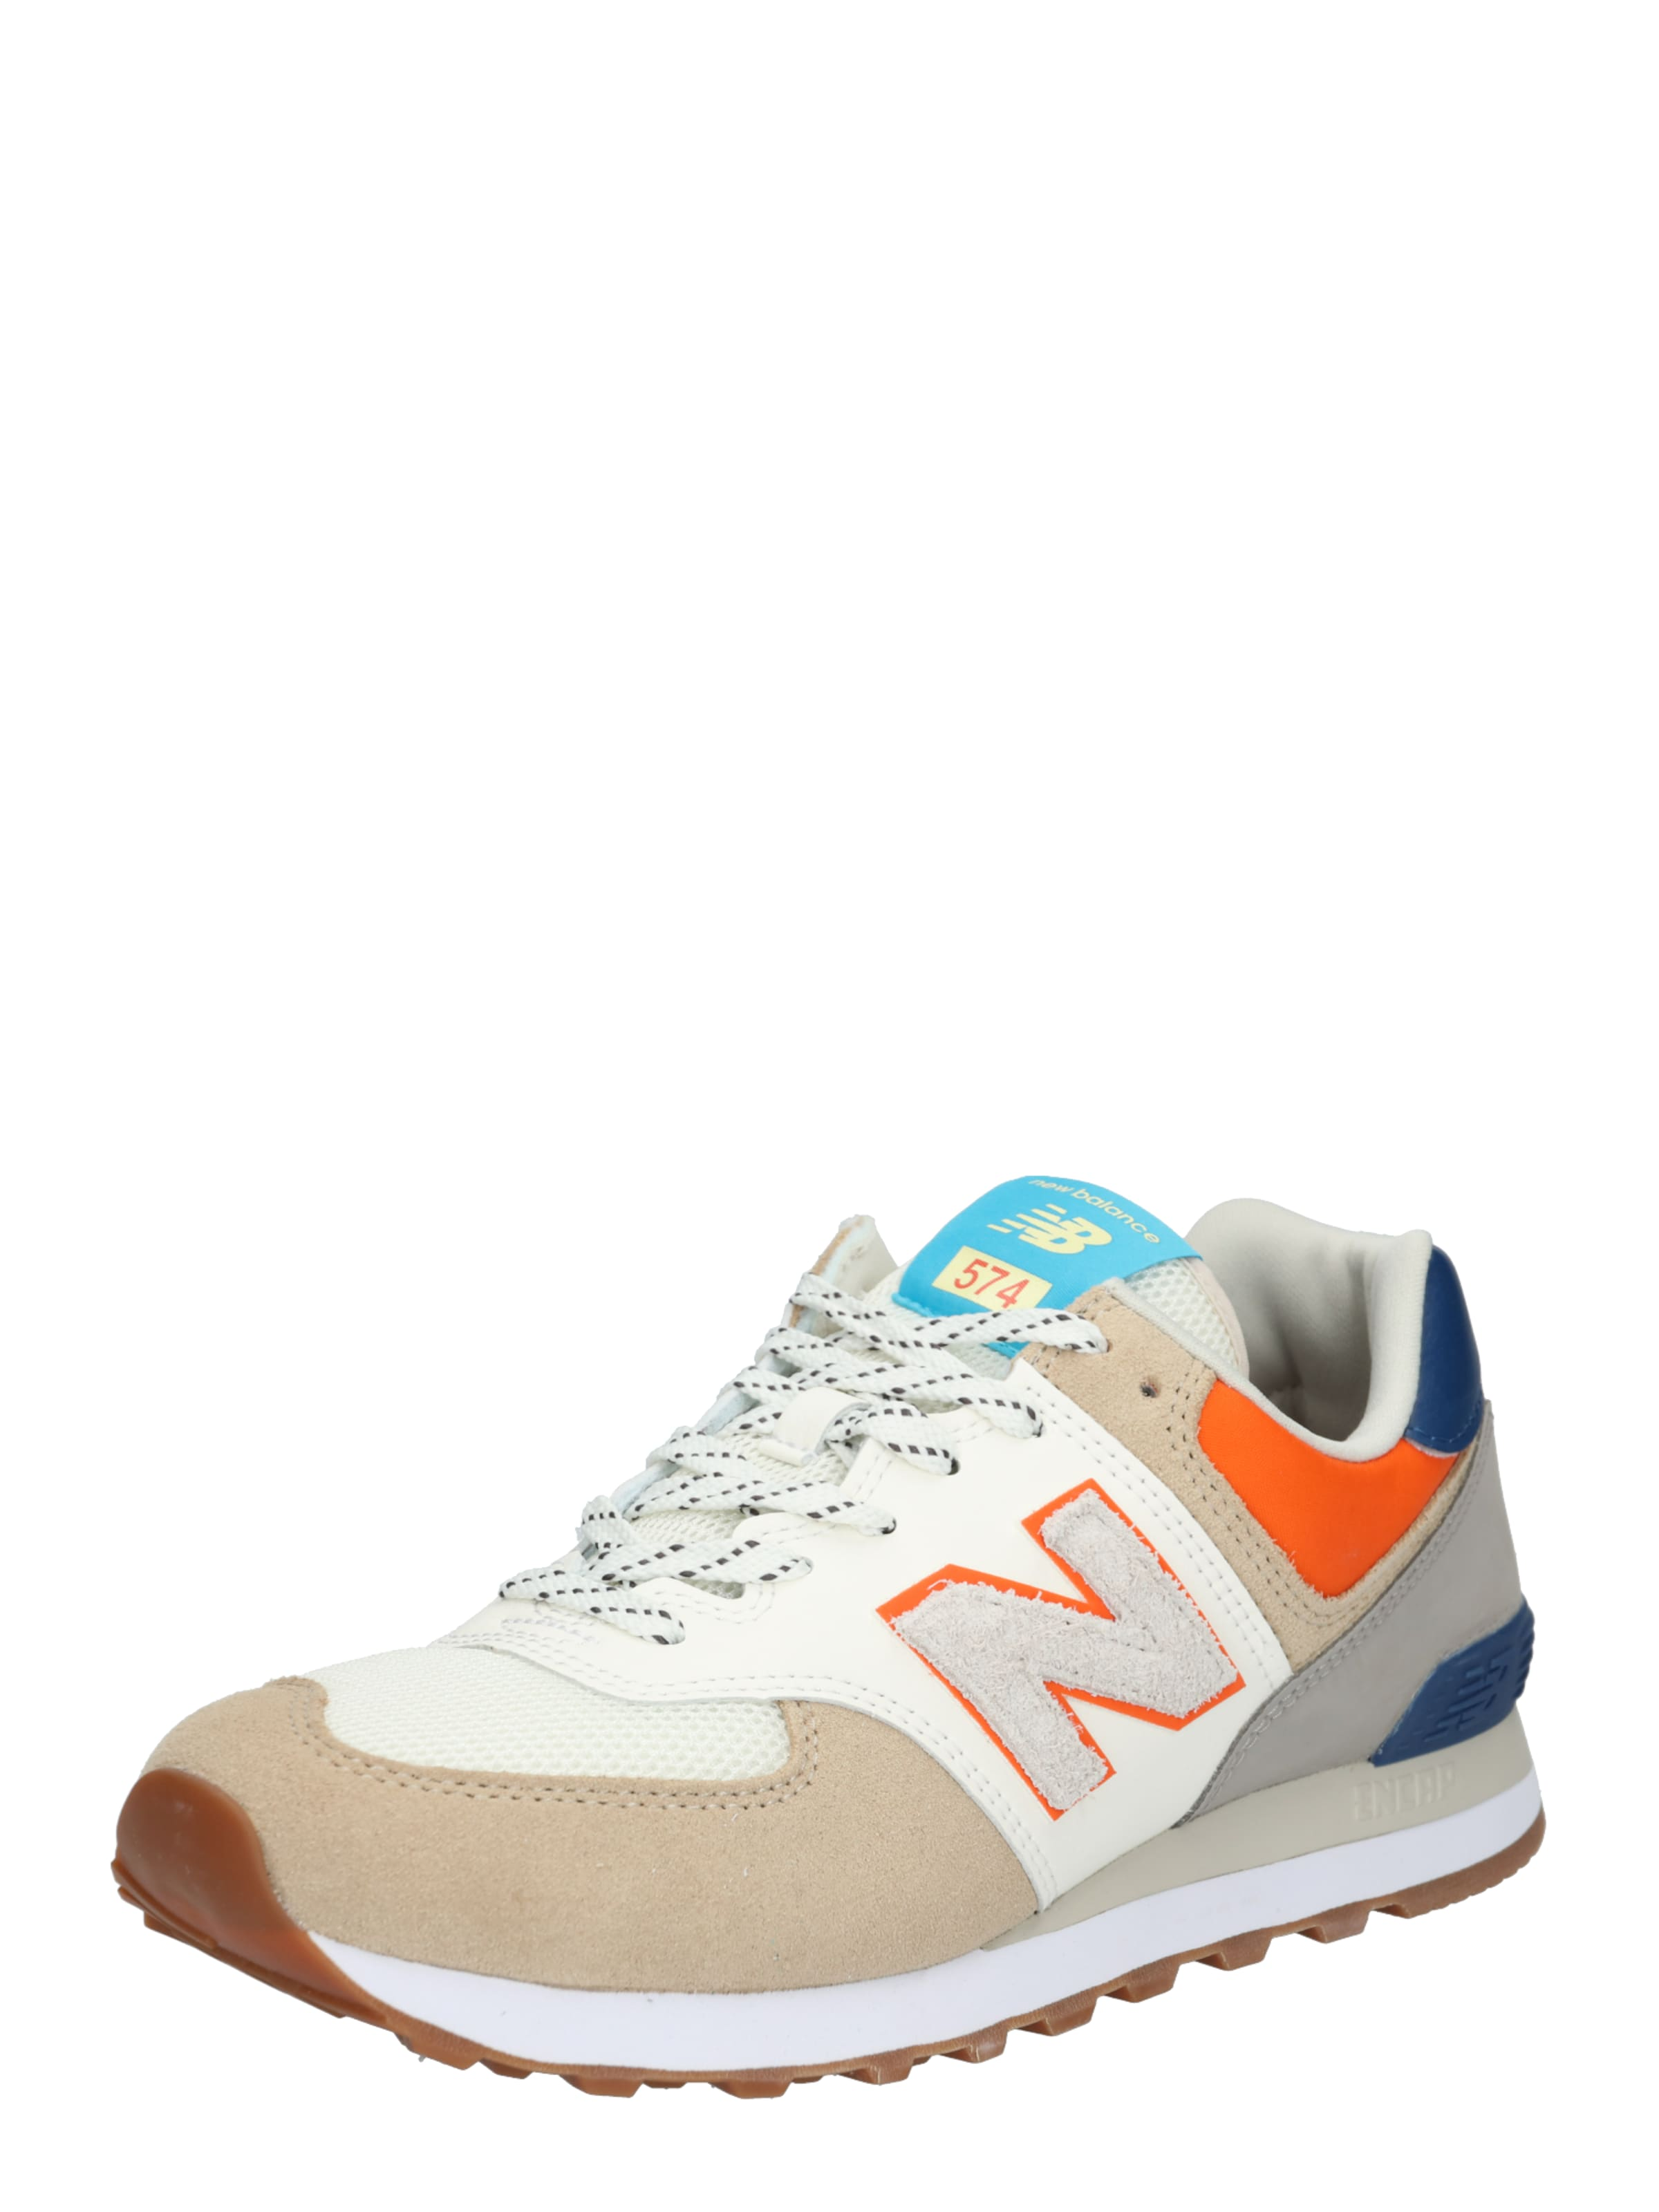 Weiß New 'ml574' Sneaker BeigeBlau In Balance 8On0PZkwXN